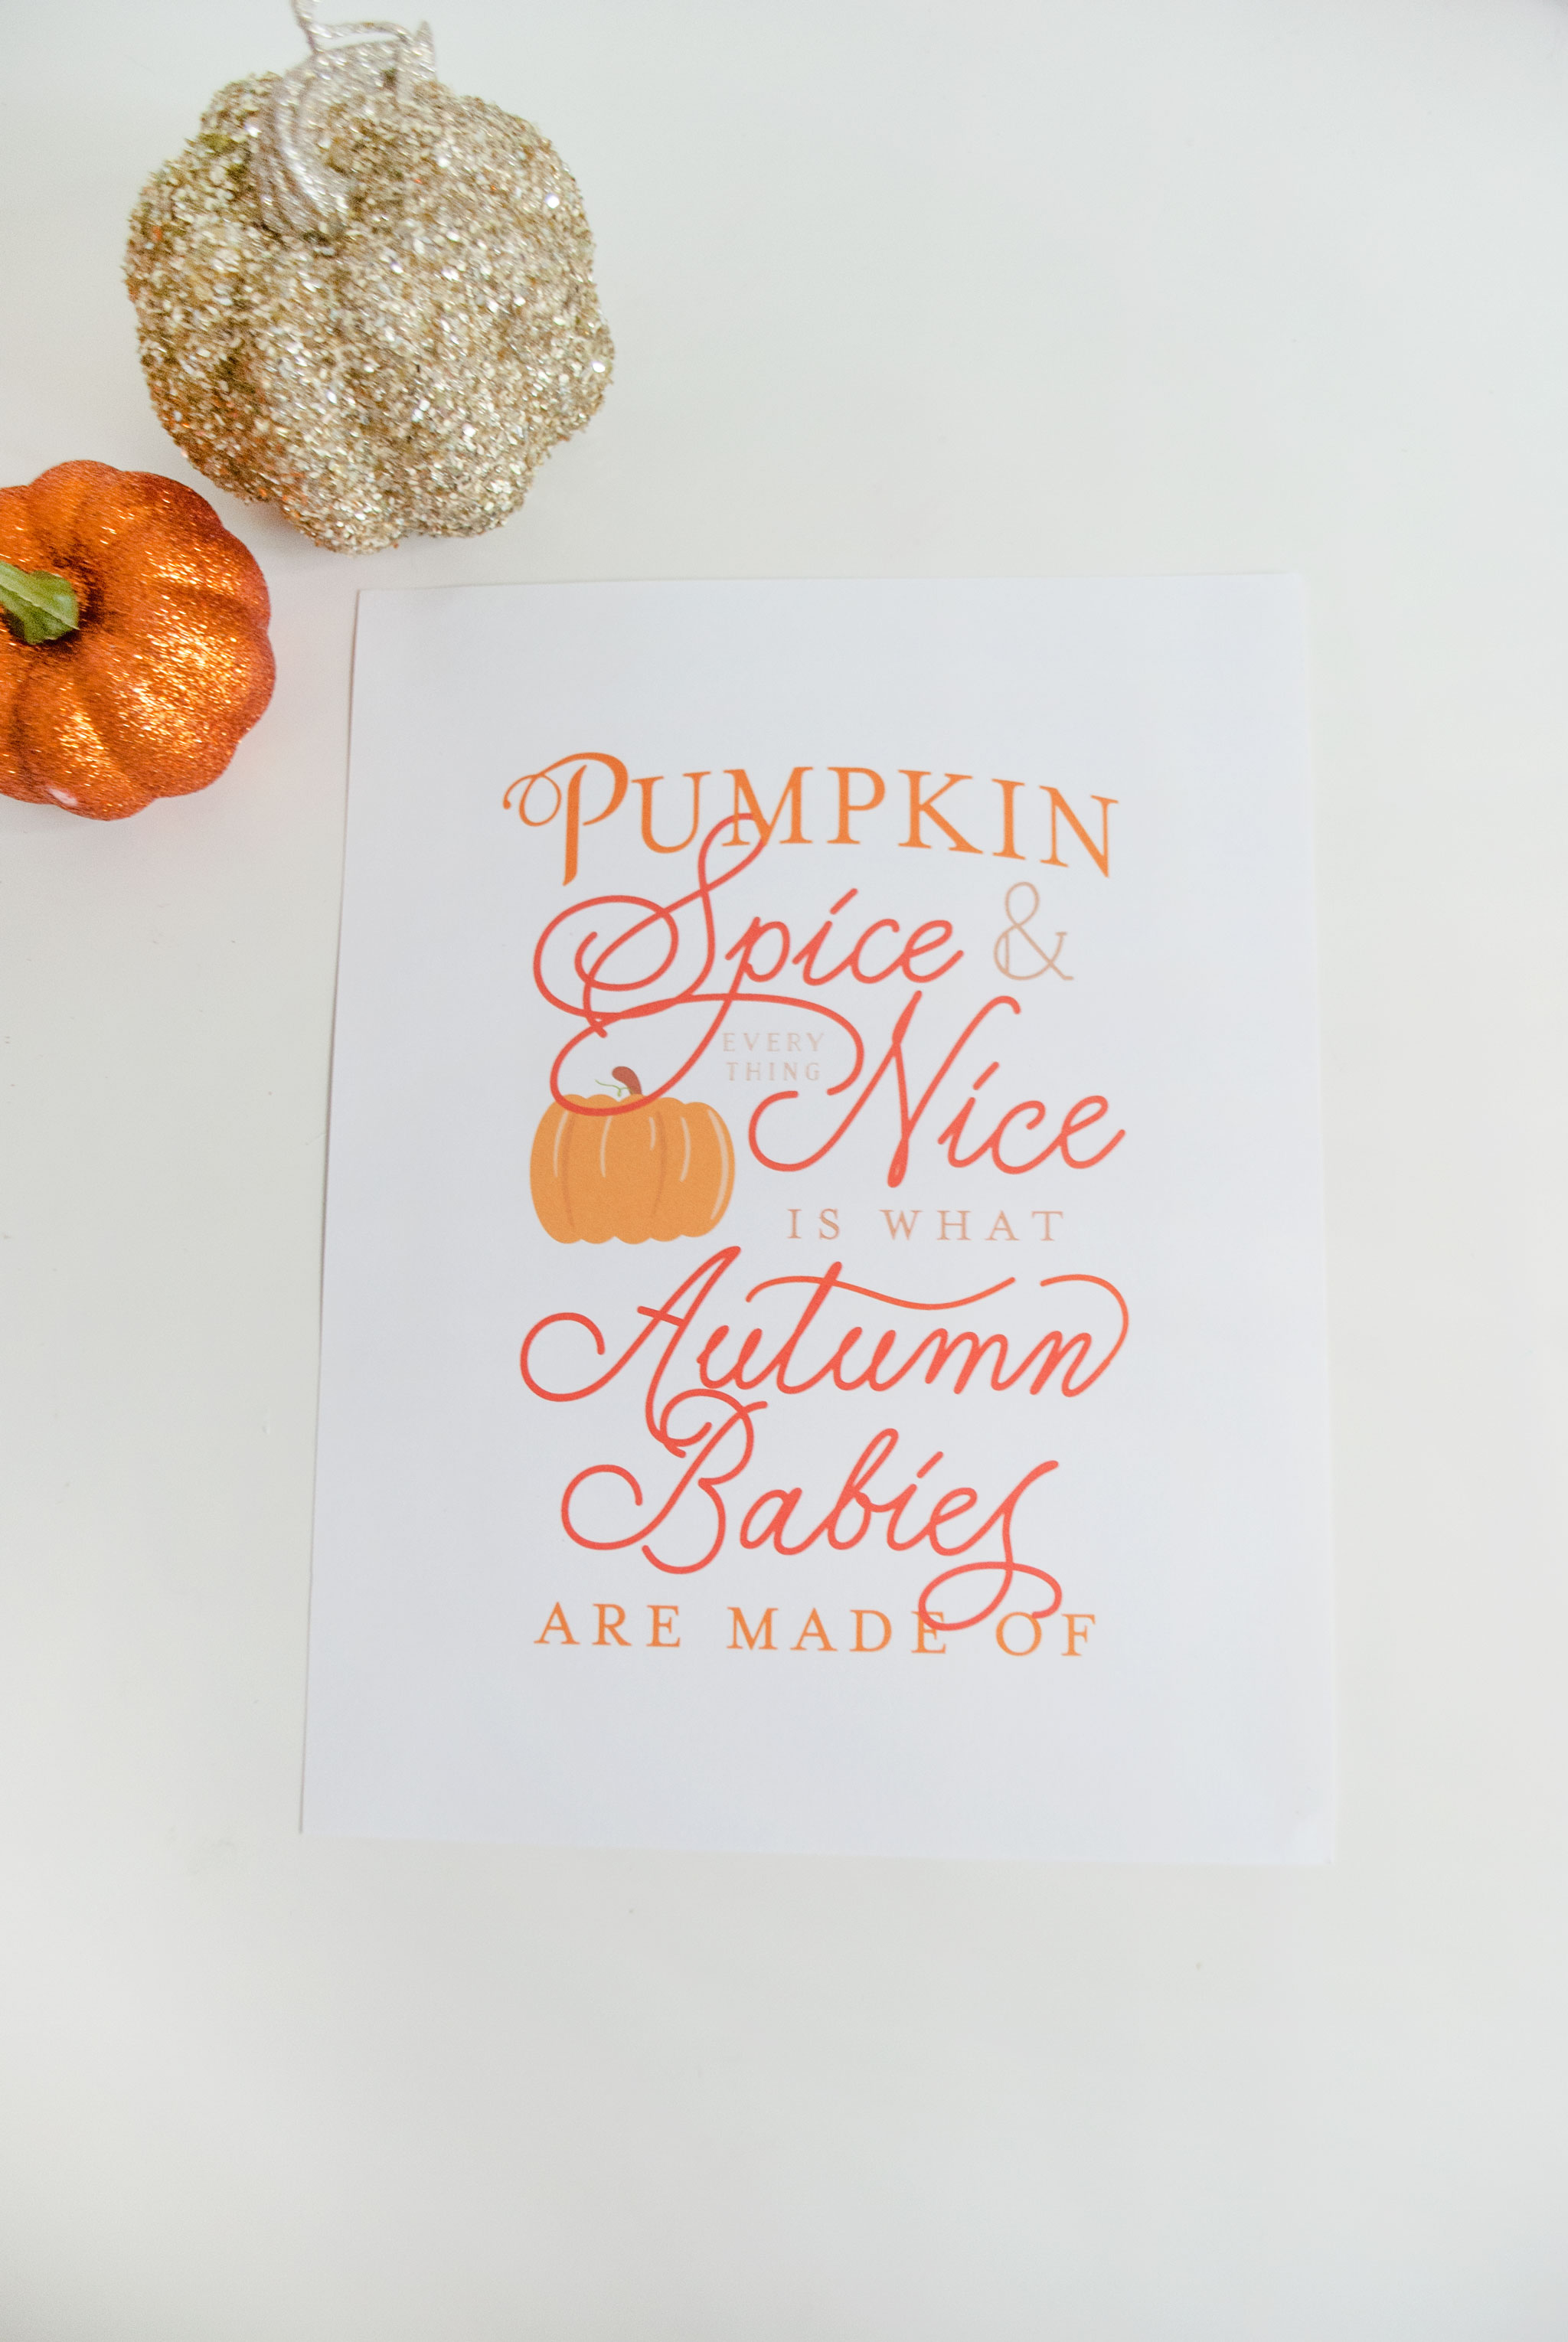 Pumpkin Spice and Everything Nice Baby Free Art Print